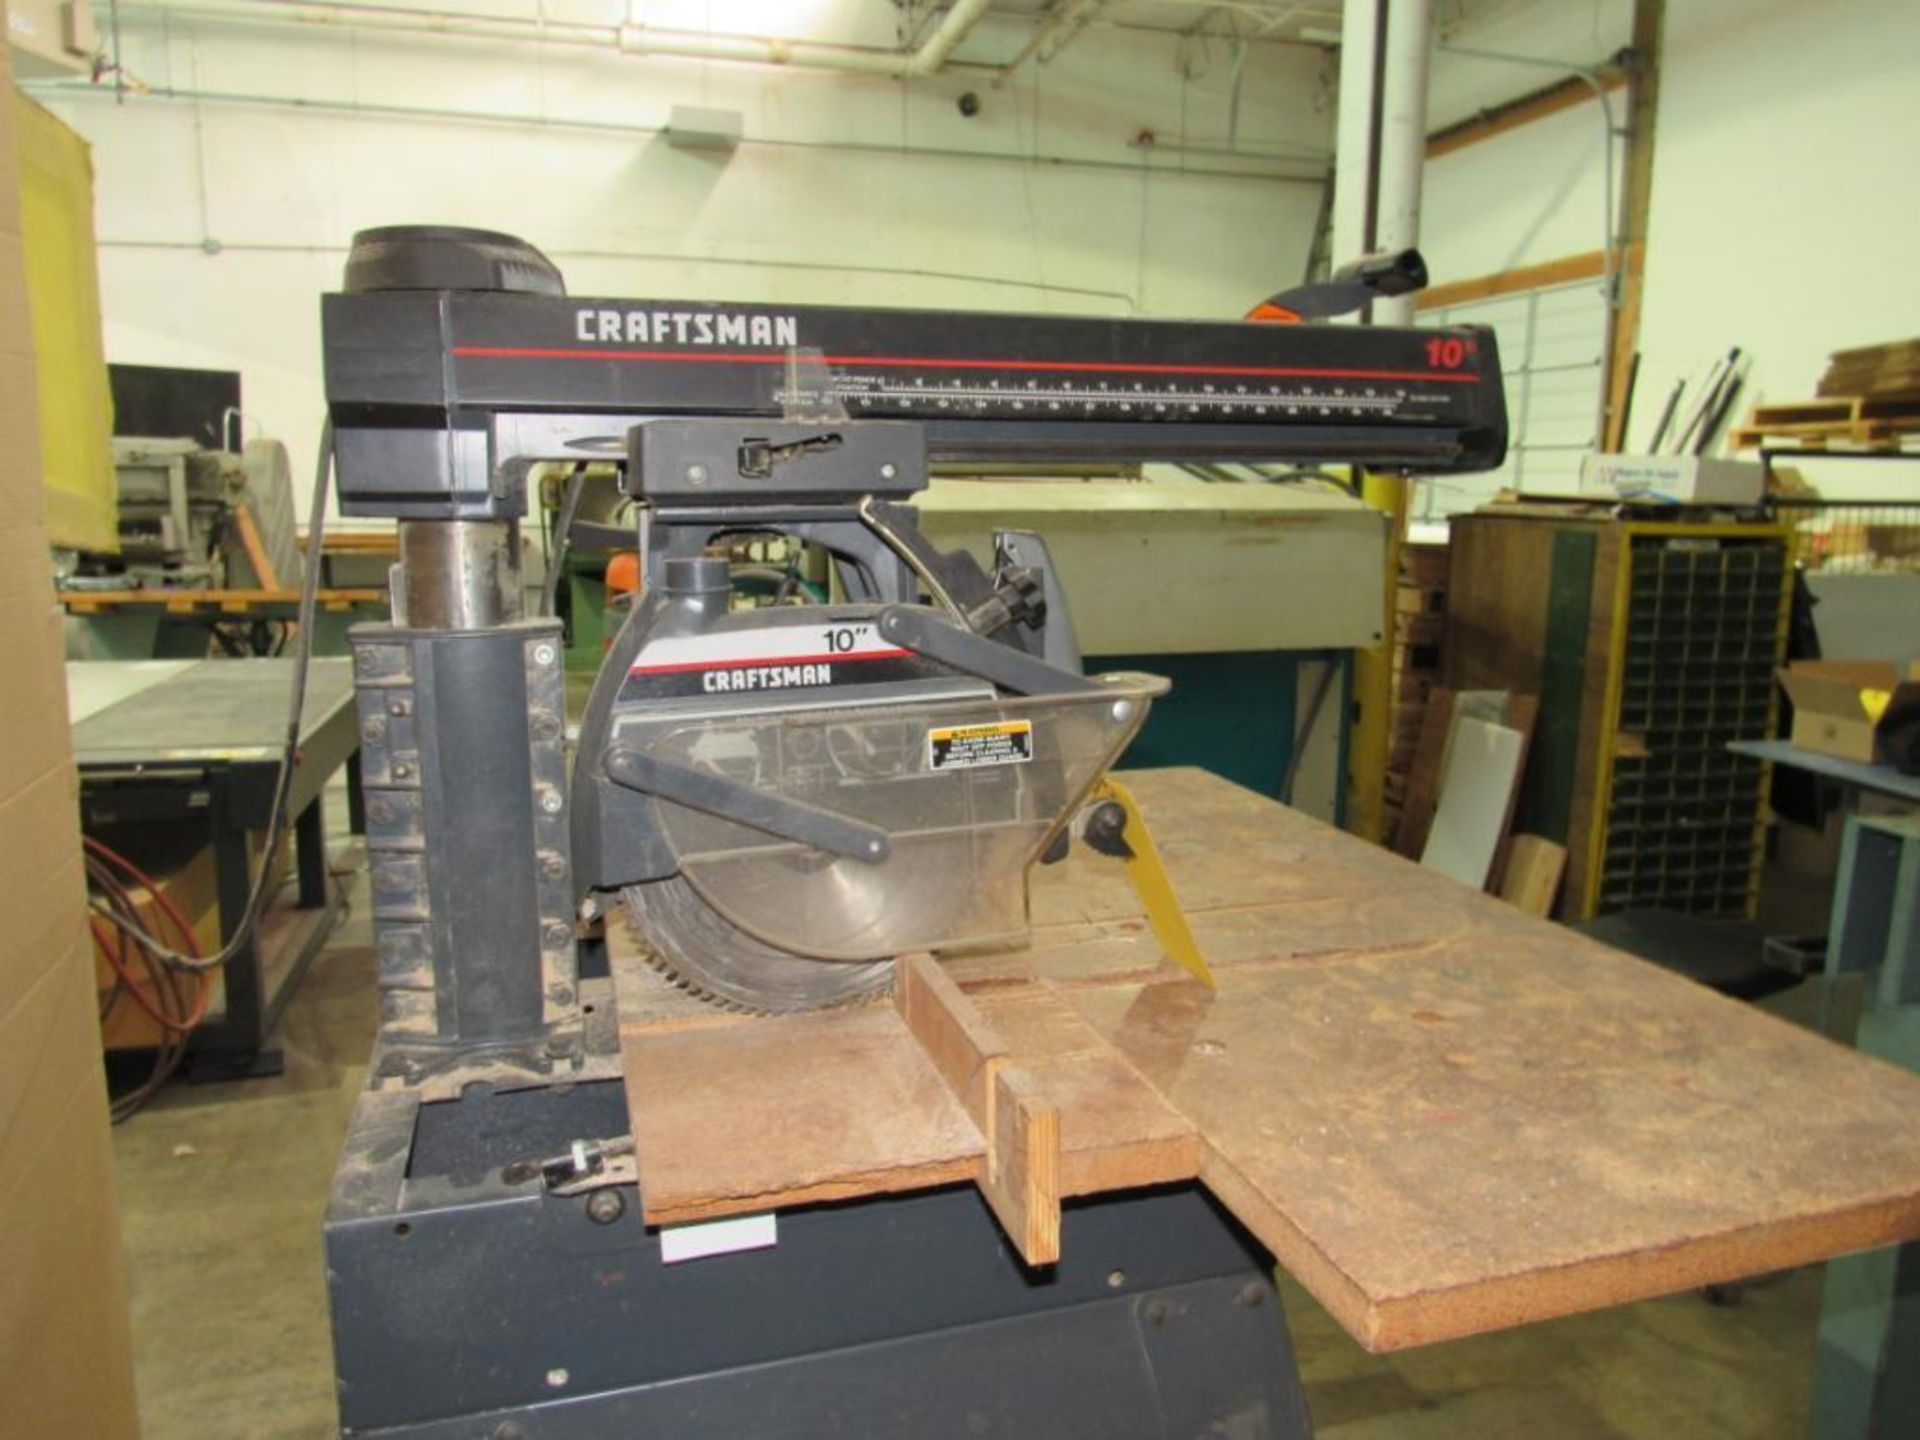 Craftsman 10 ft. Table Saw, 2.75 HP - Image 3 of 3